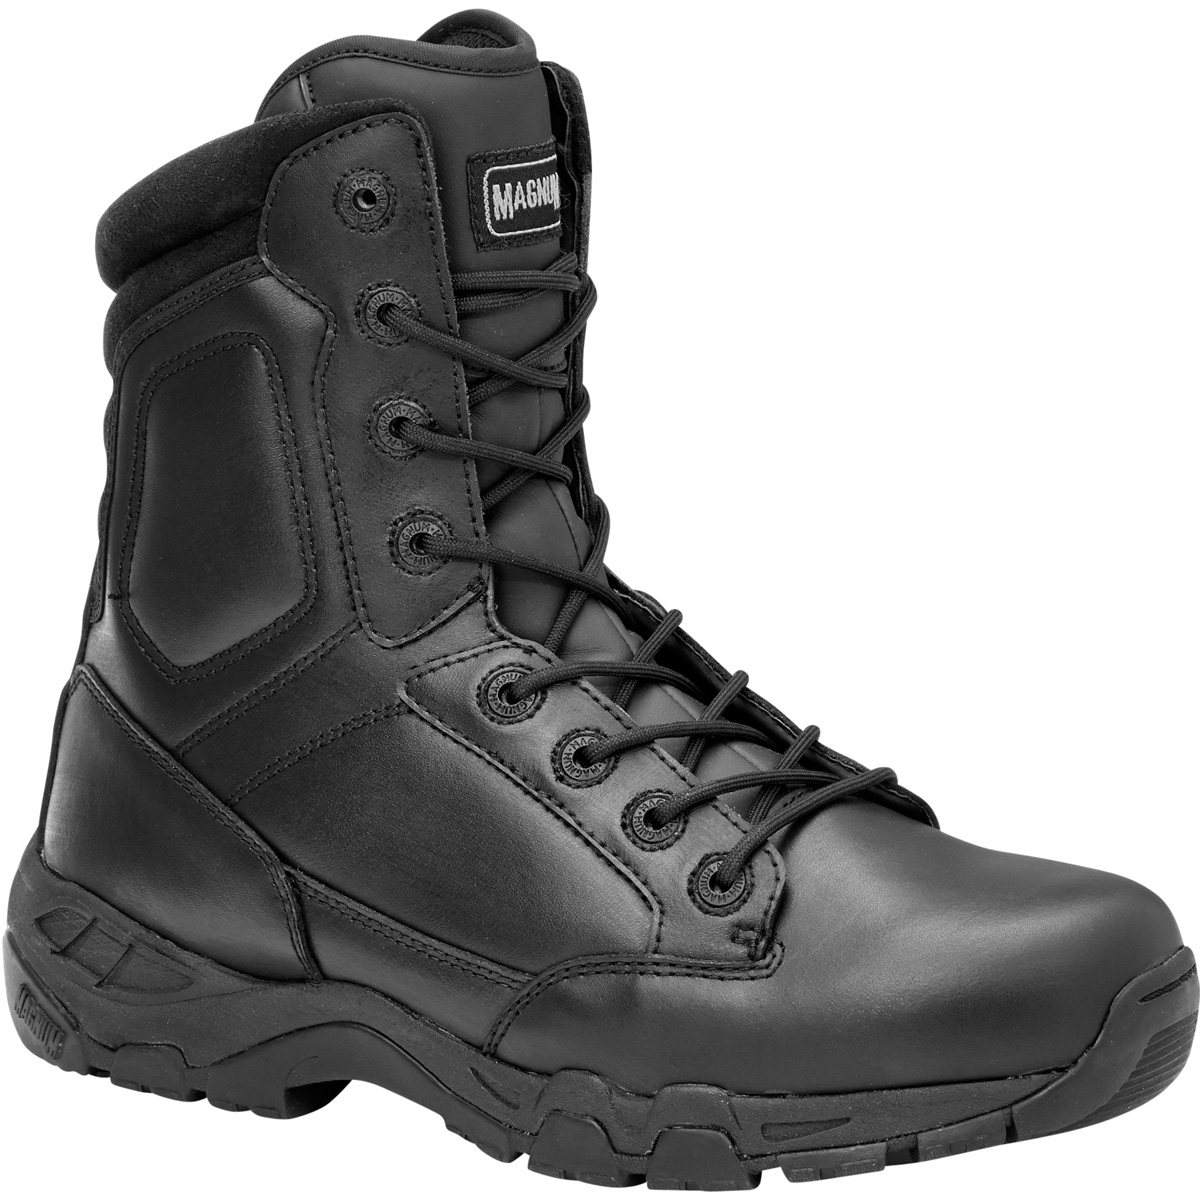 Magnum Viper Pro 8 0 Leather Mens Boots Waterproof